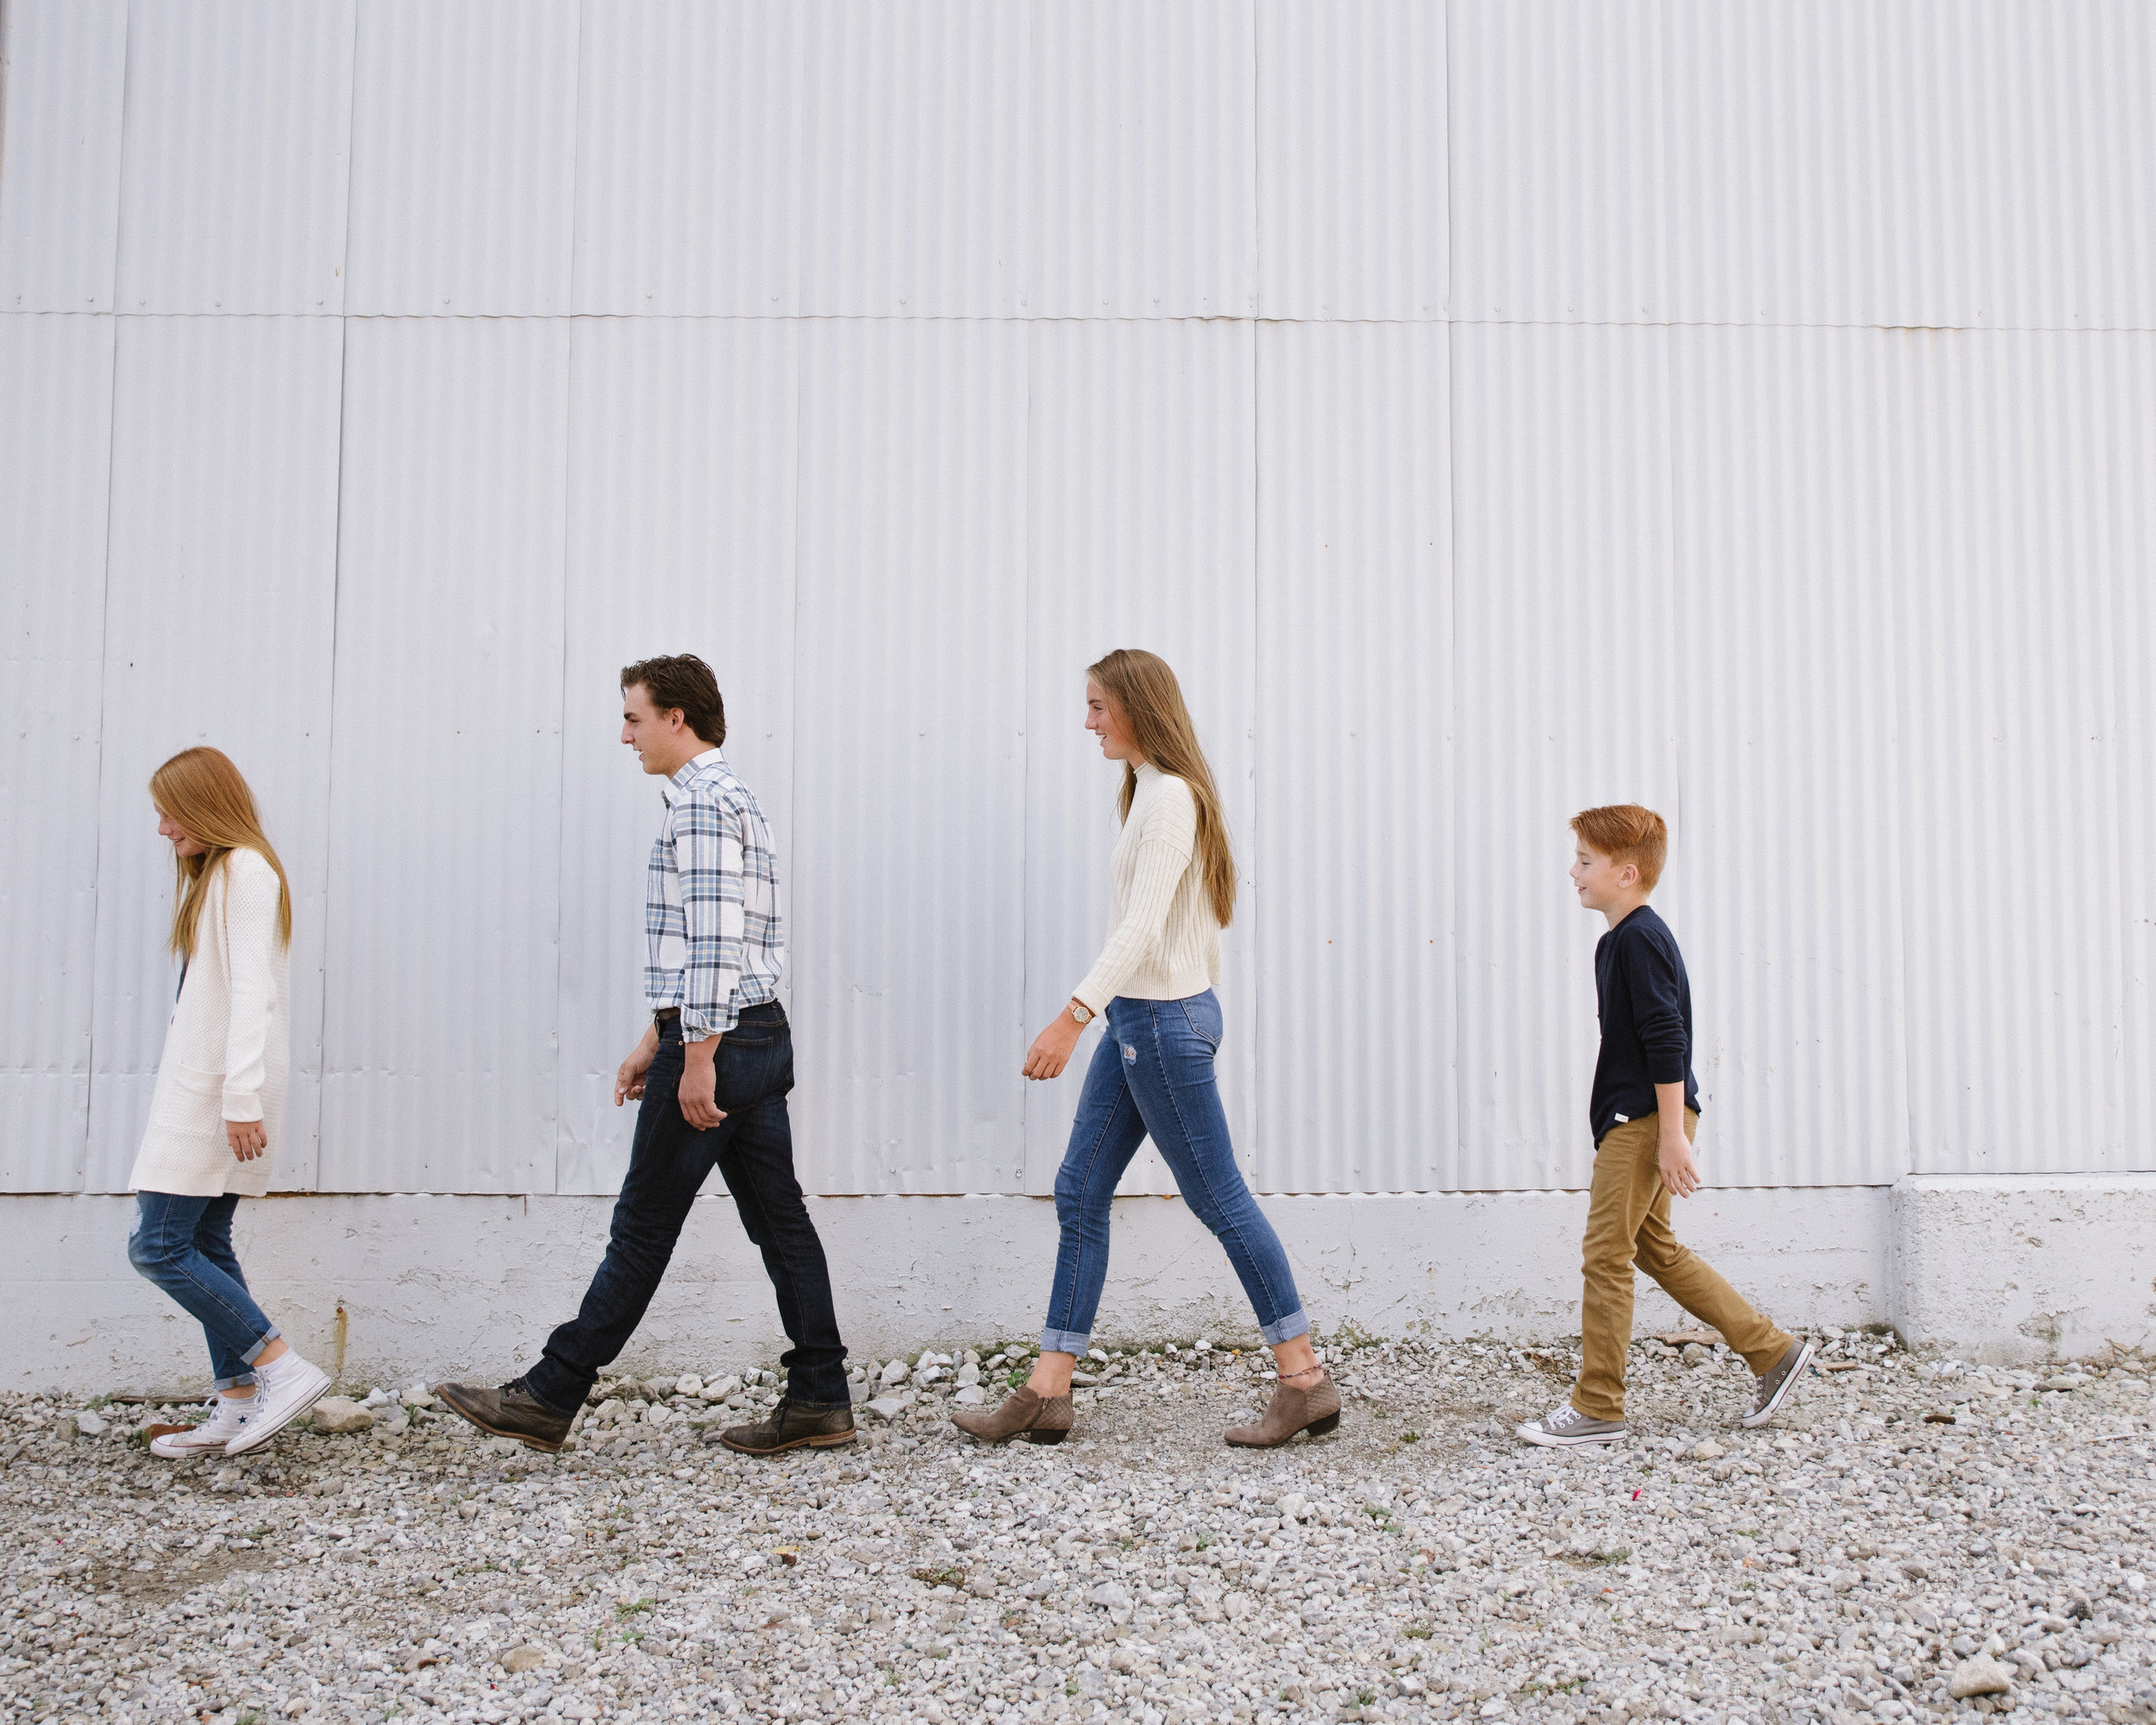 Each child in this family was able to express their individual style while still providing a great, unified look.